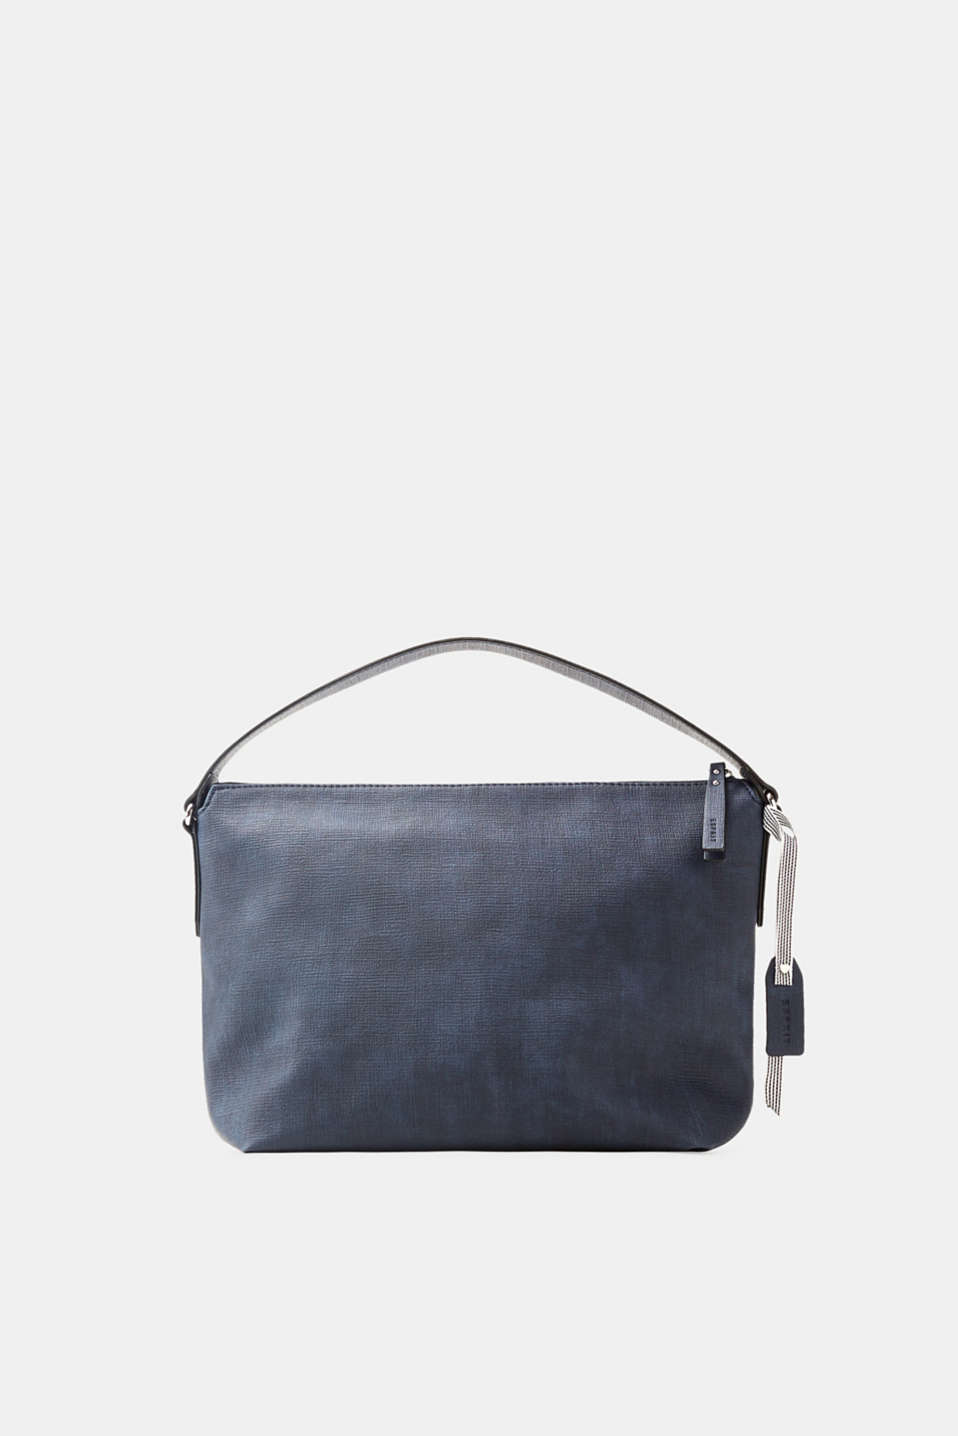 Esprit - Hobo bag in finely grained faux leather